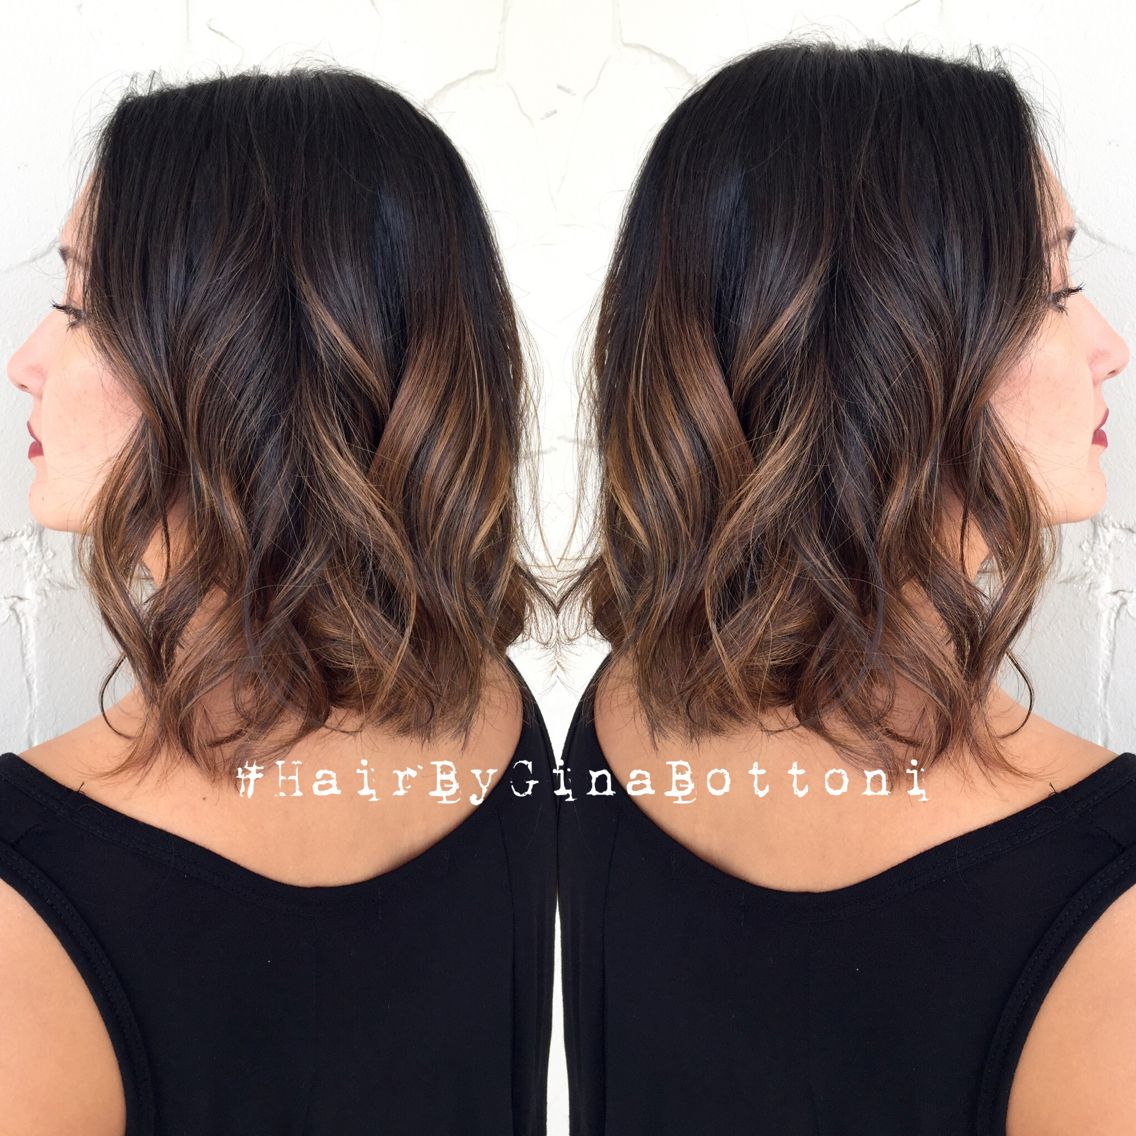 Pin by foxy moon on Balayage  Pinterest  Lob Brunettes and Instagram